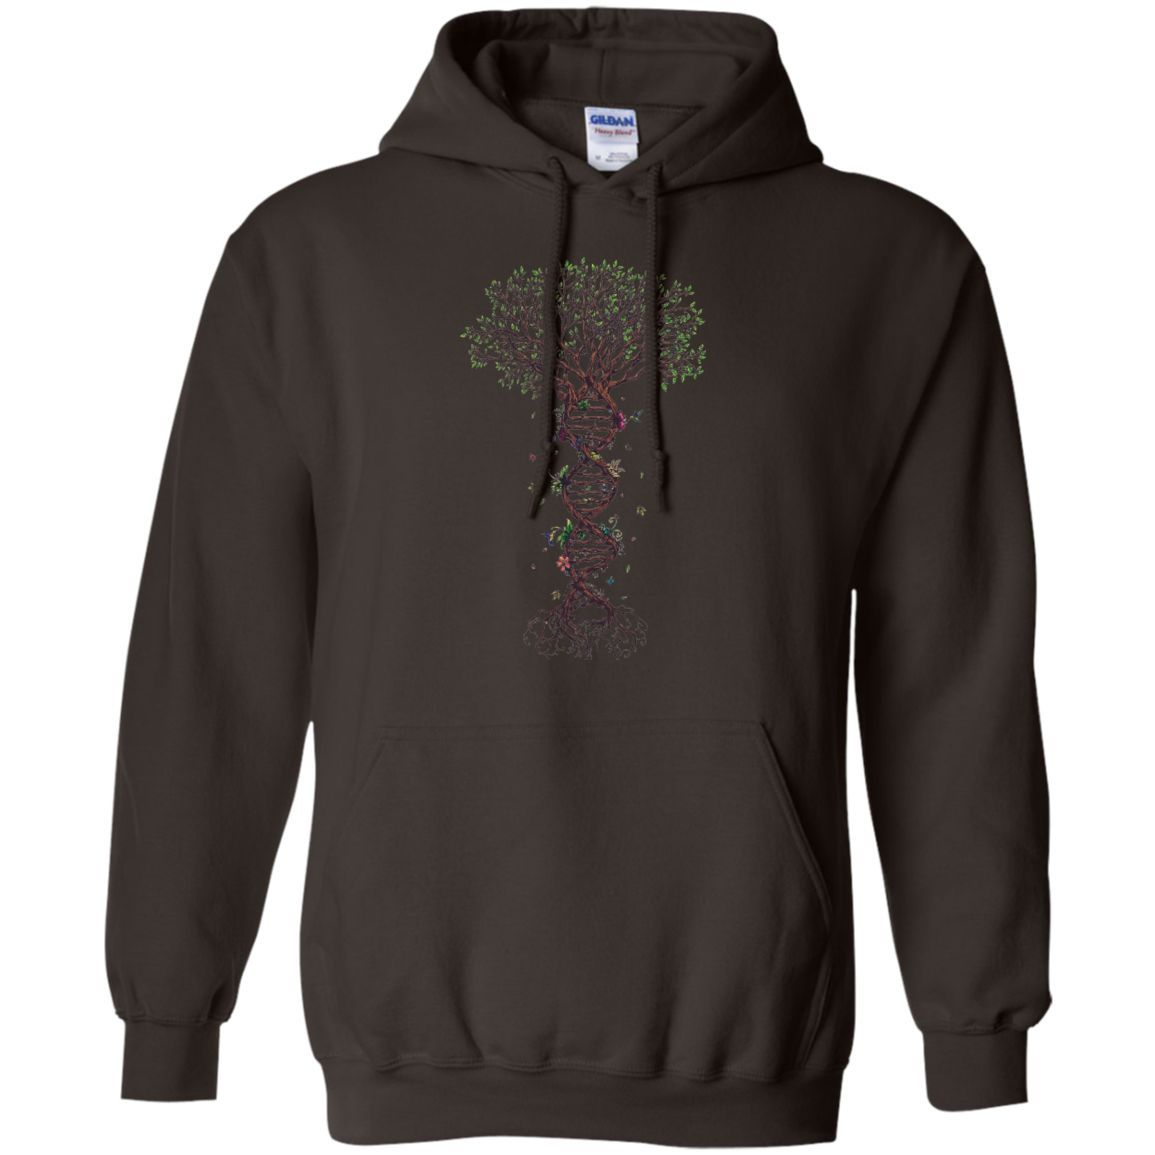 ADN tree Of Life -01 Pullover Hoodie 8 oz